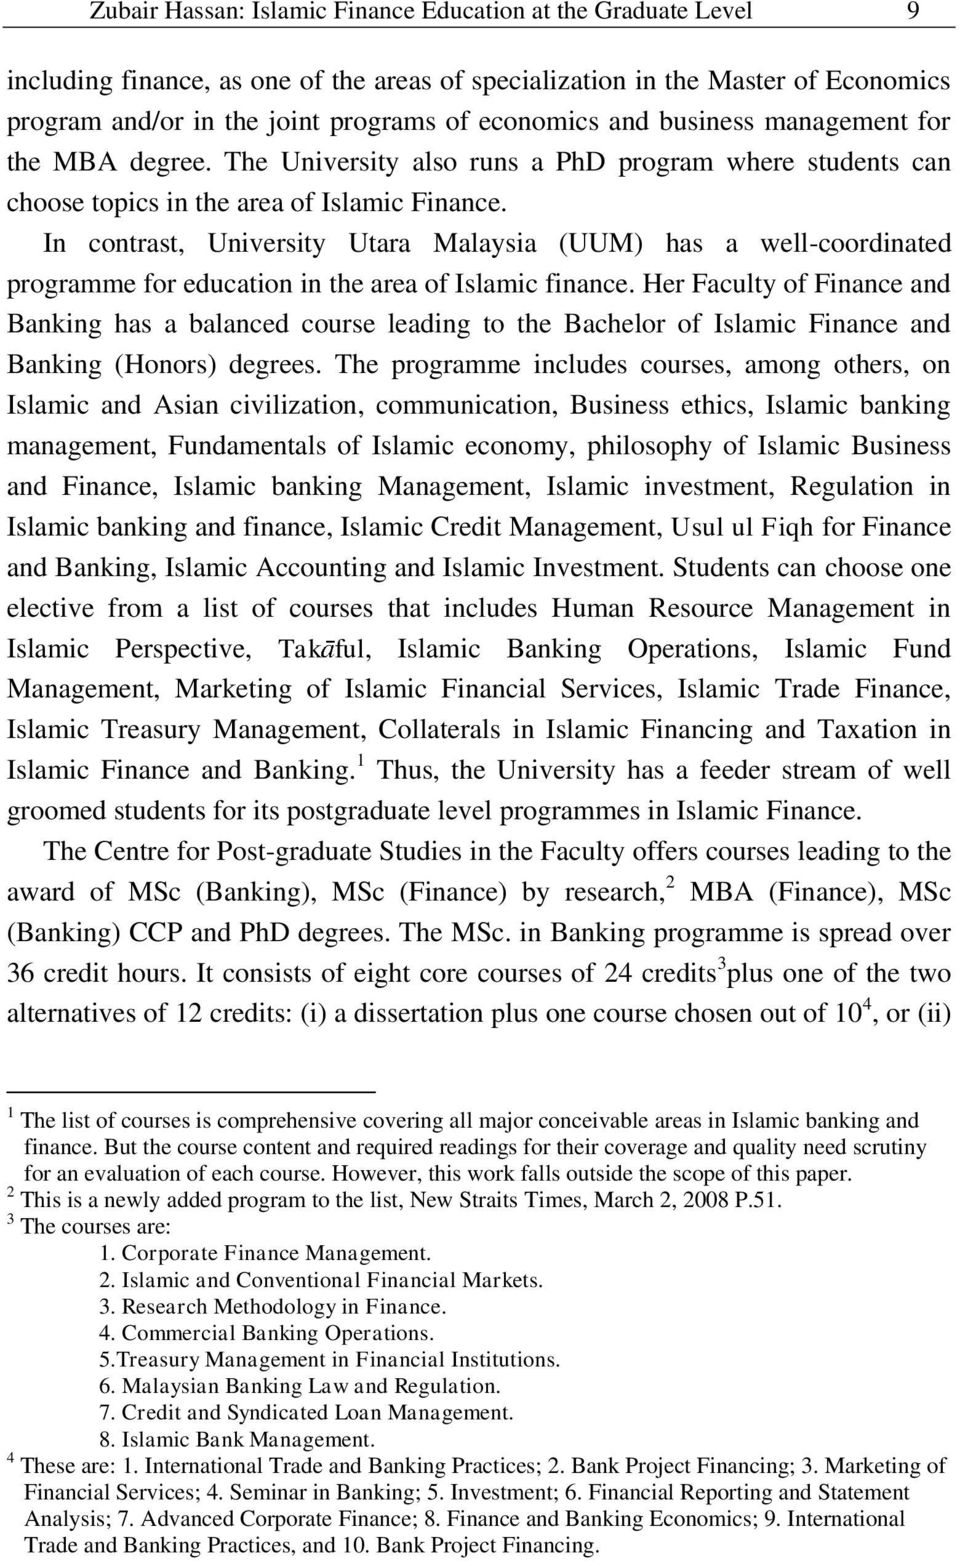 In contrast, University Utara Malaysia (UUM) has a well-coordinated programme for education in the area of Islamic finance.